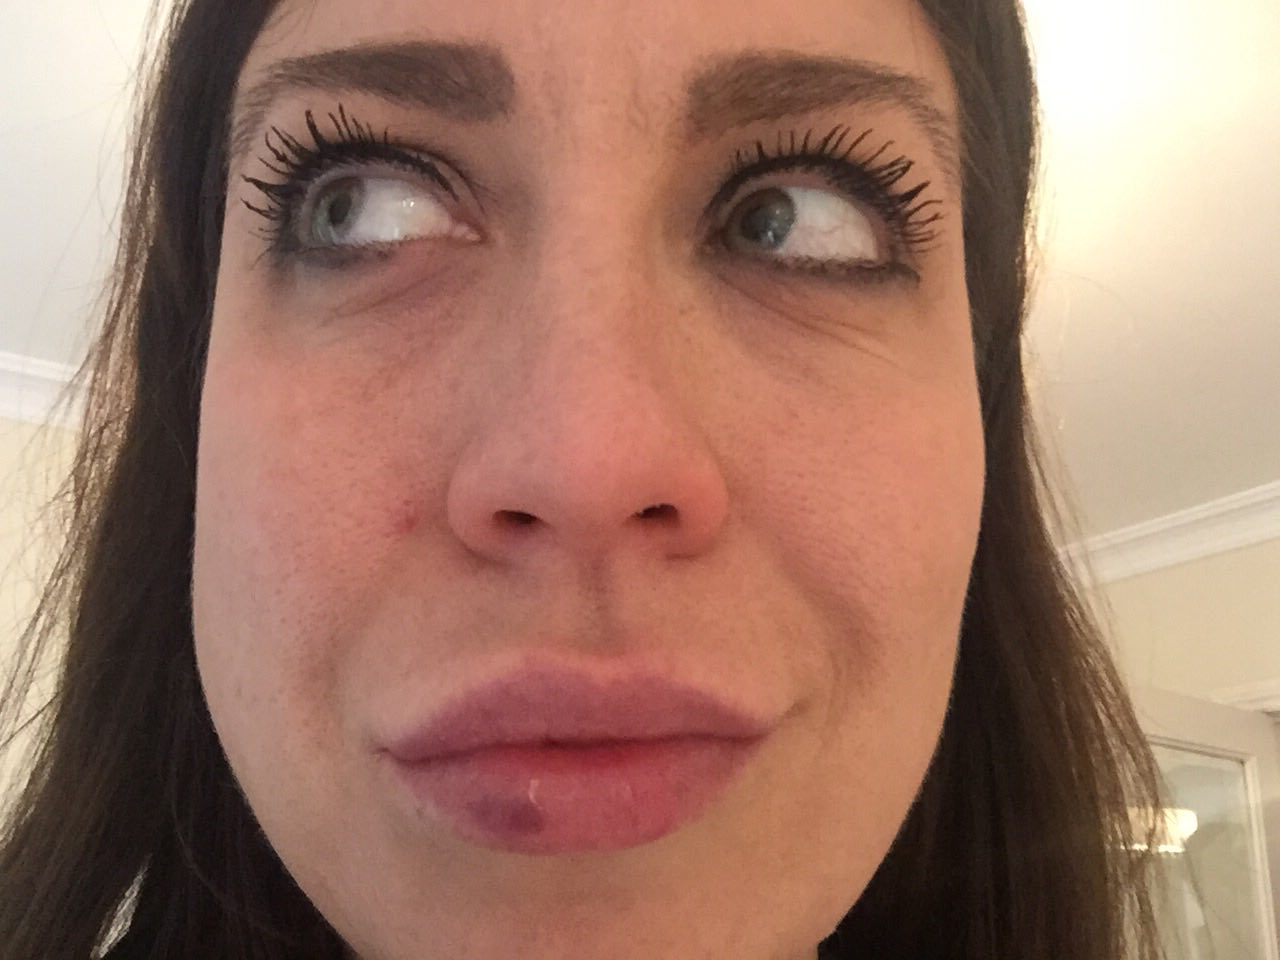 I got my lips enhanced with filler for the first time and here's how